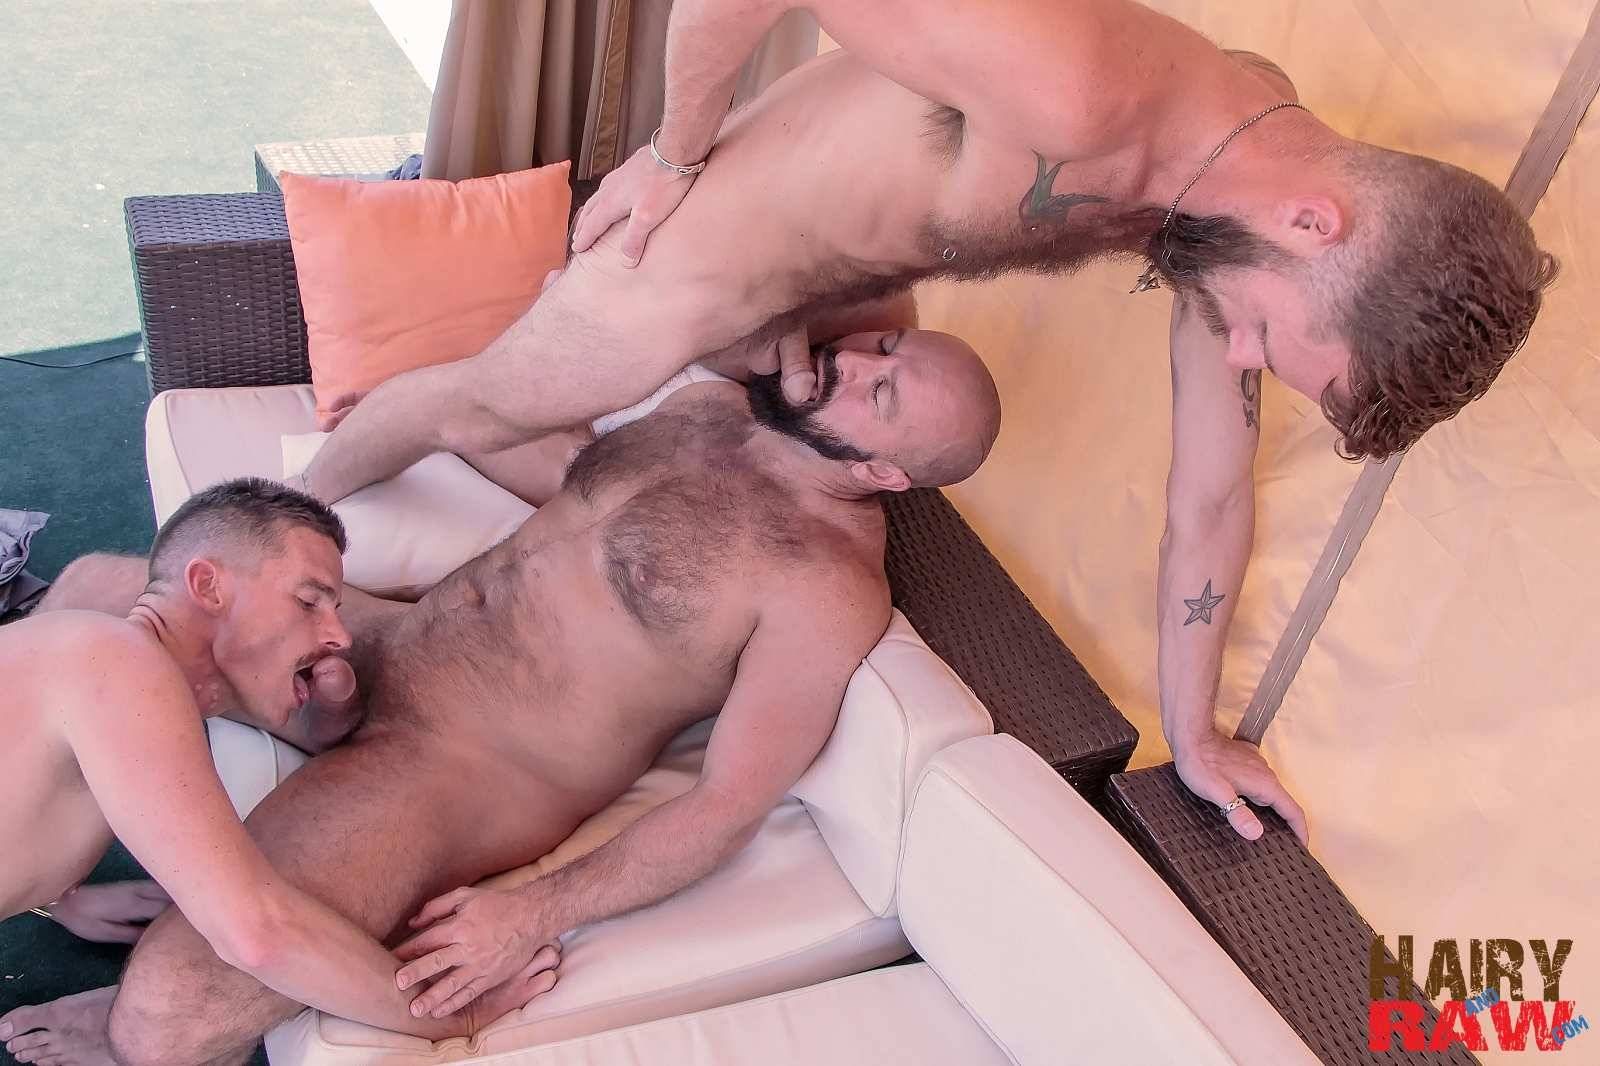 Big gay cock sucking